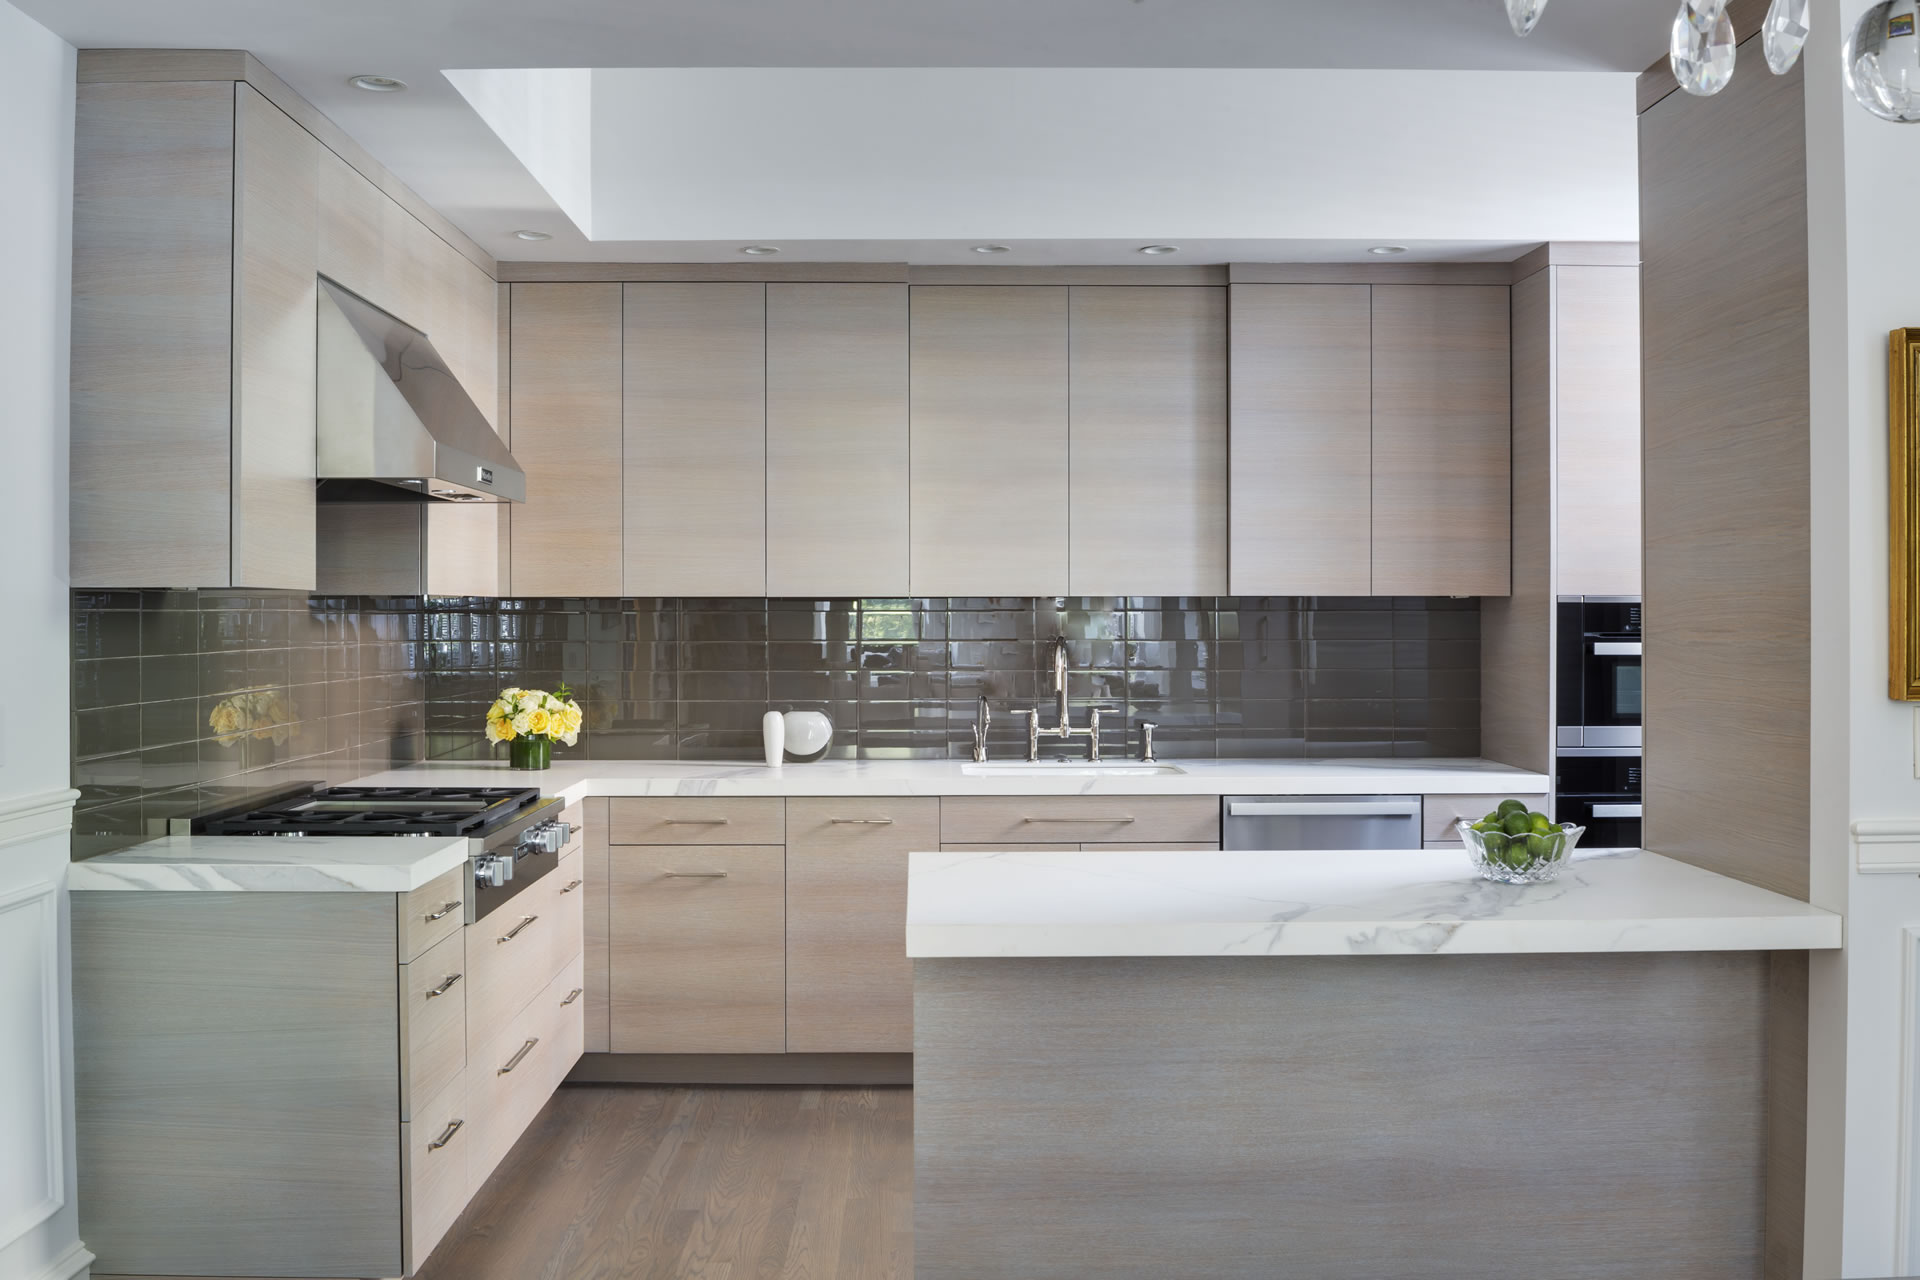 Newton Kitchens & Design - Truly hand-crafted kitchens